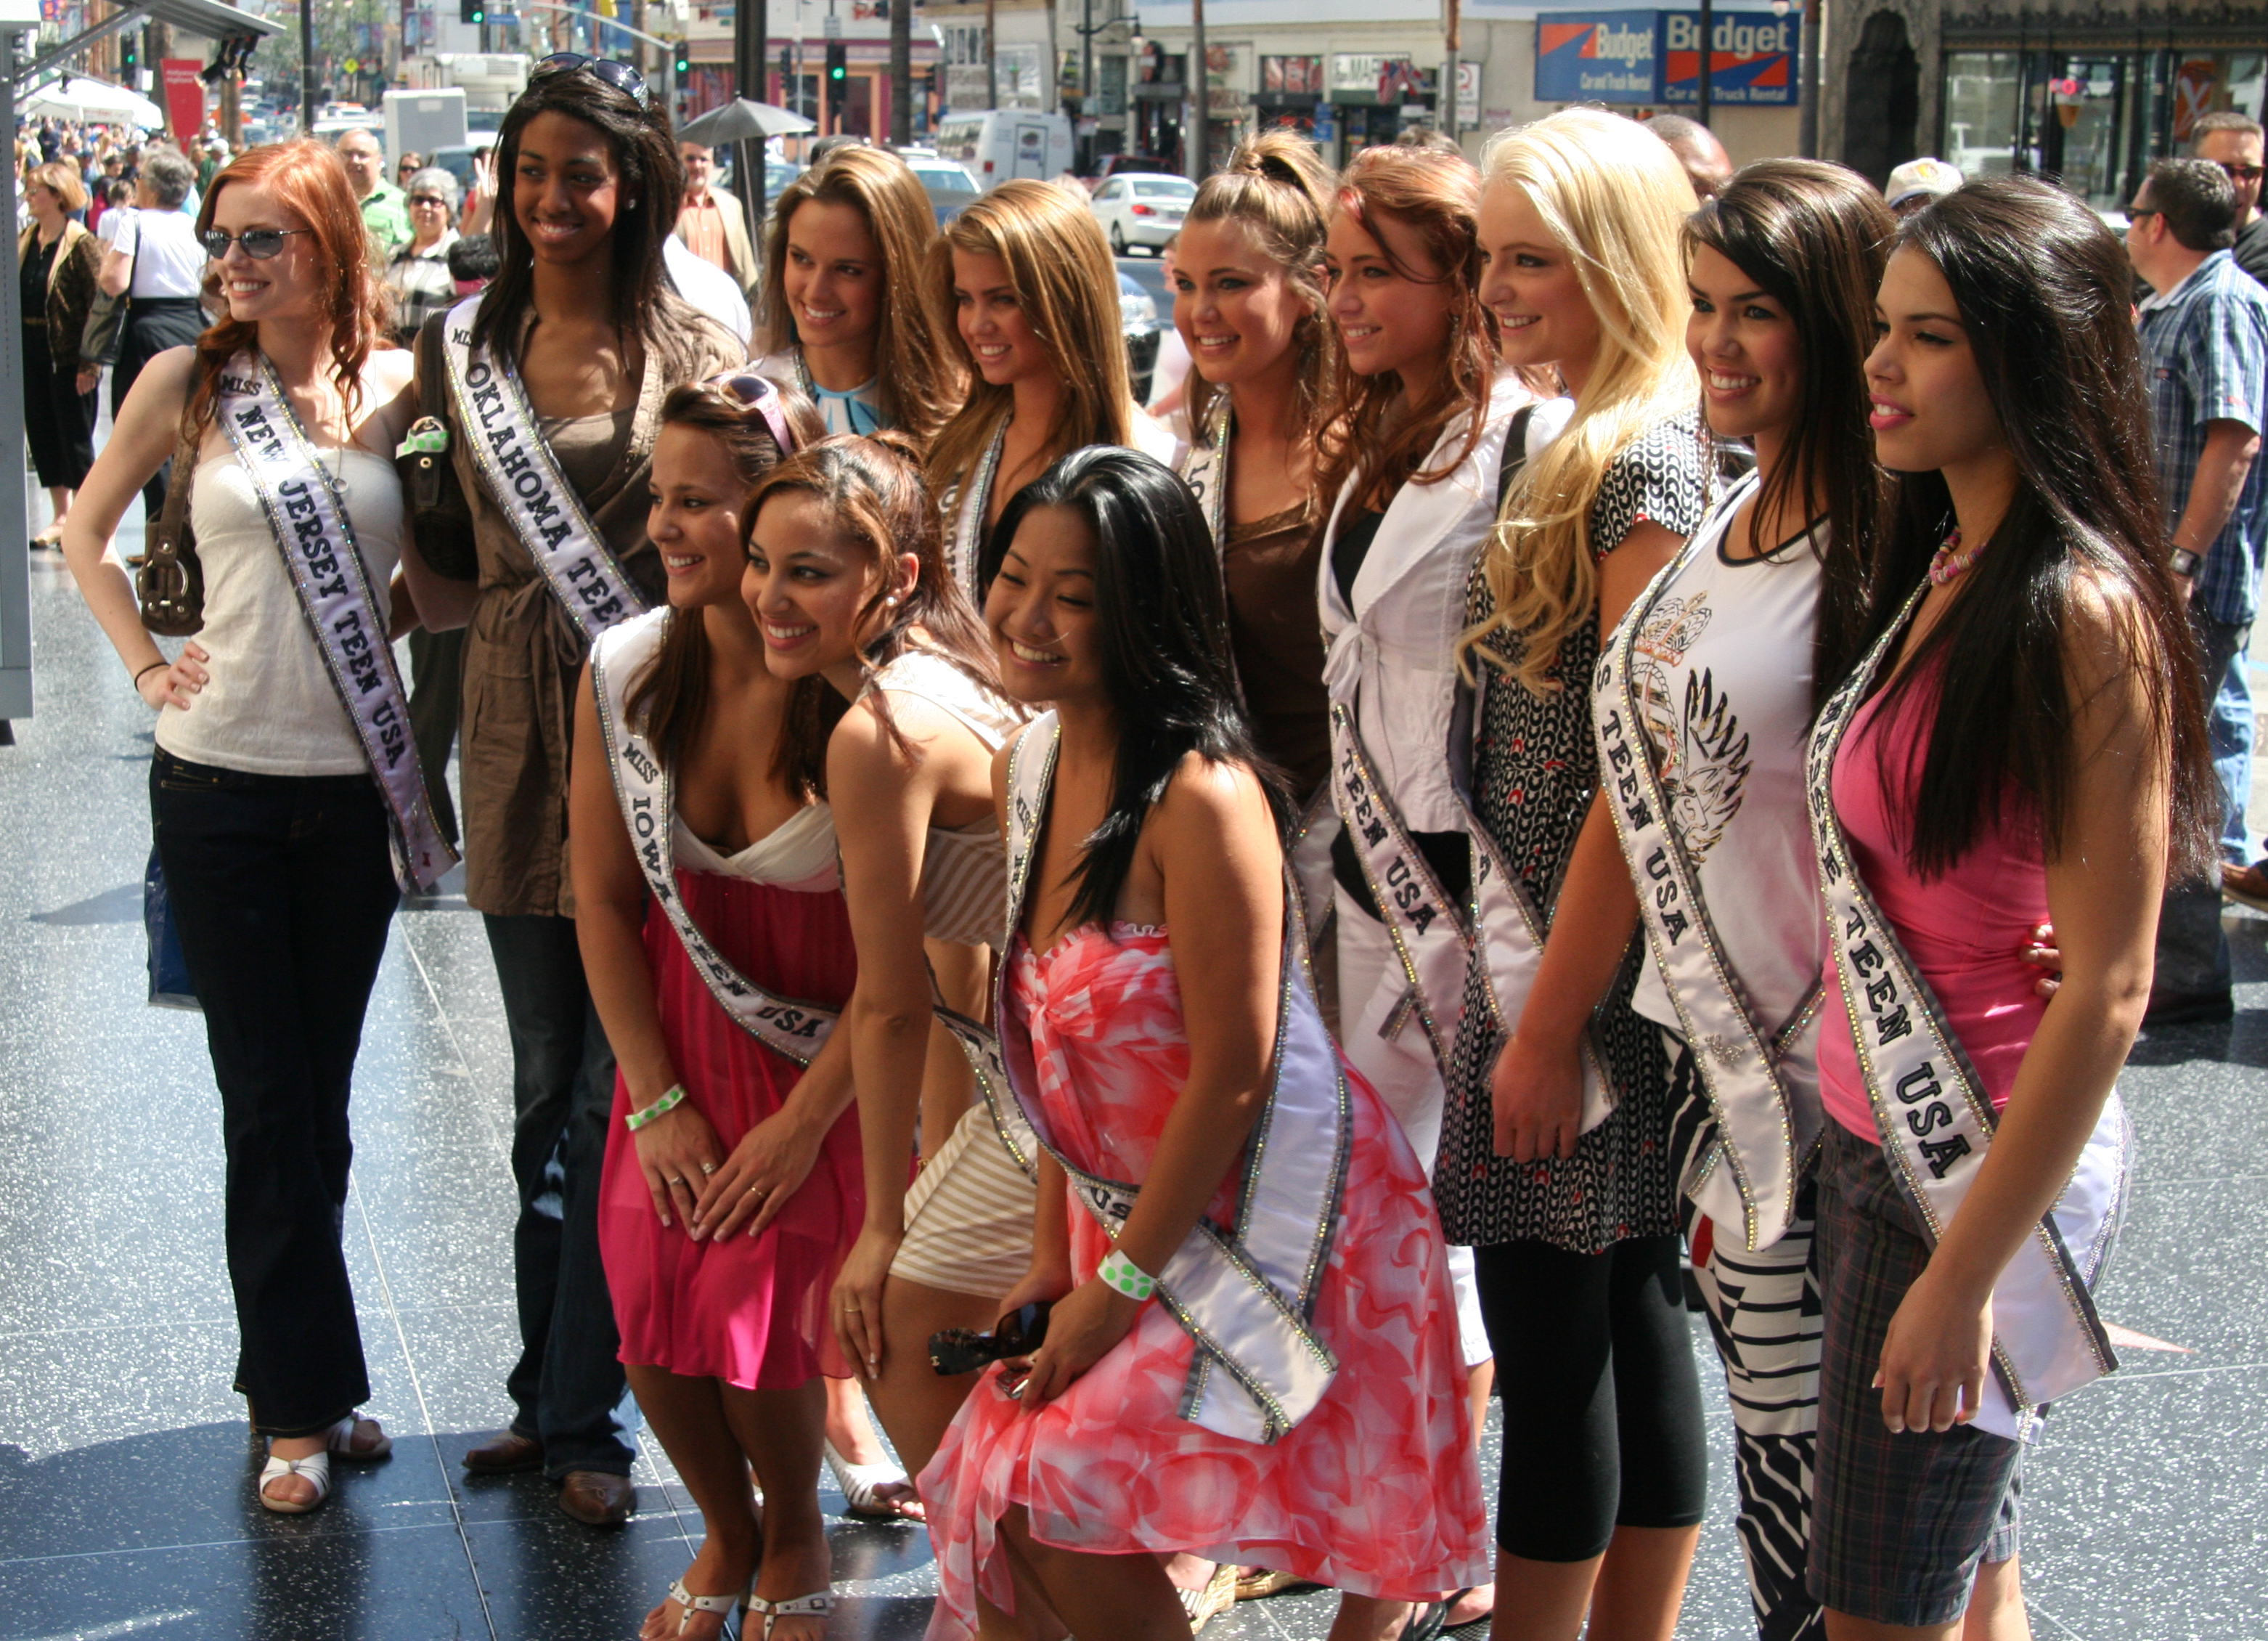 File:Miss Teen USA 2007 delegates Hollywood and Highland March 2007 2.png